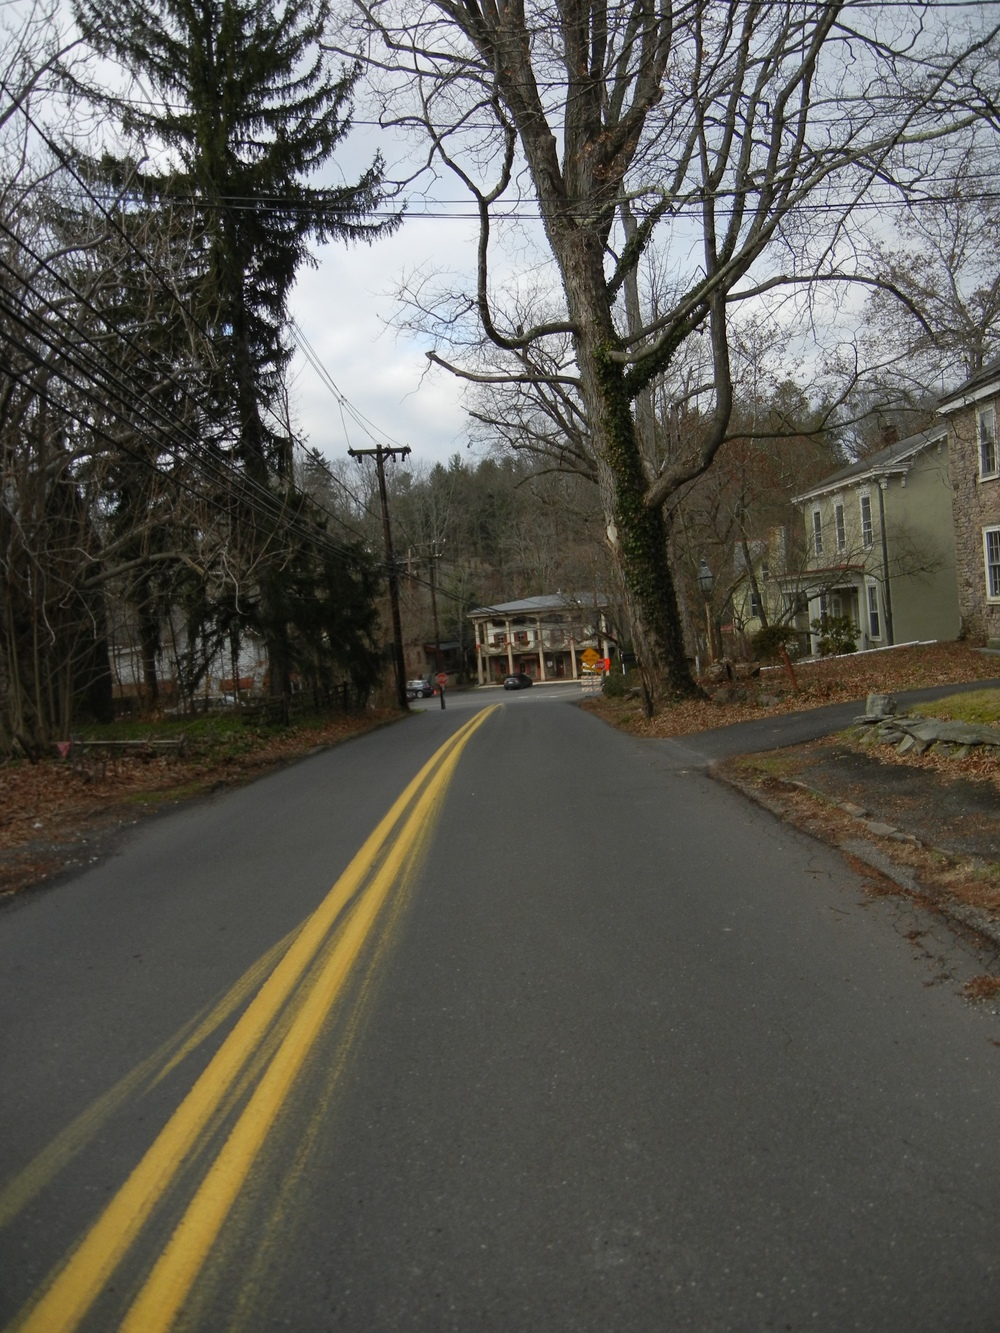 On the approach to Carversville. The Carversville Inn is center, a building that was present during the Revolutionary War times.